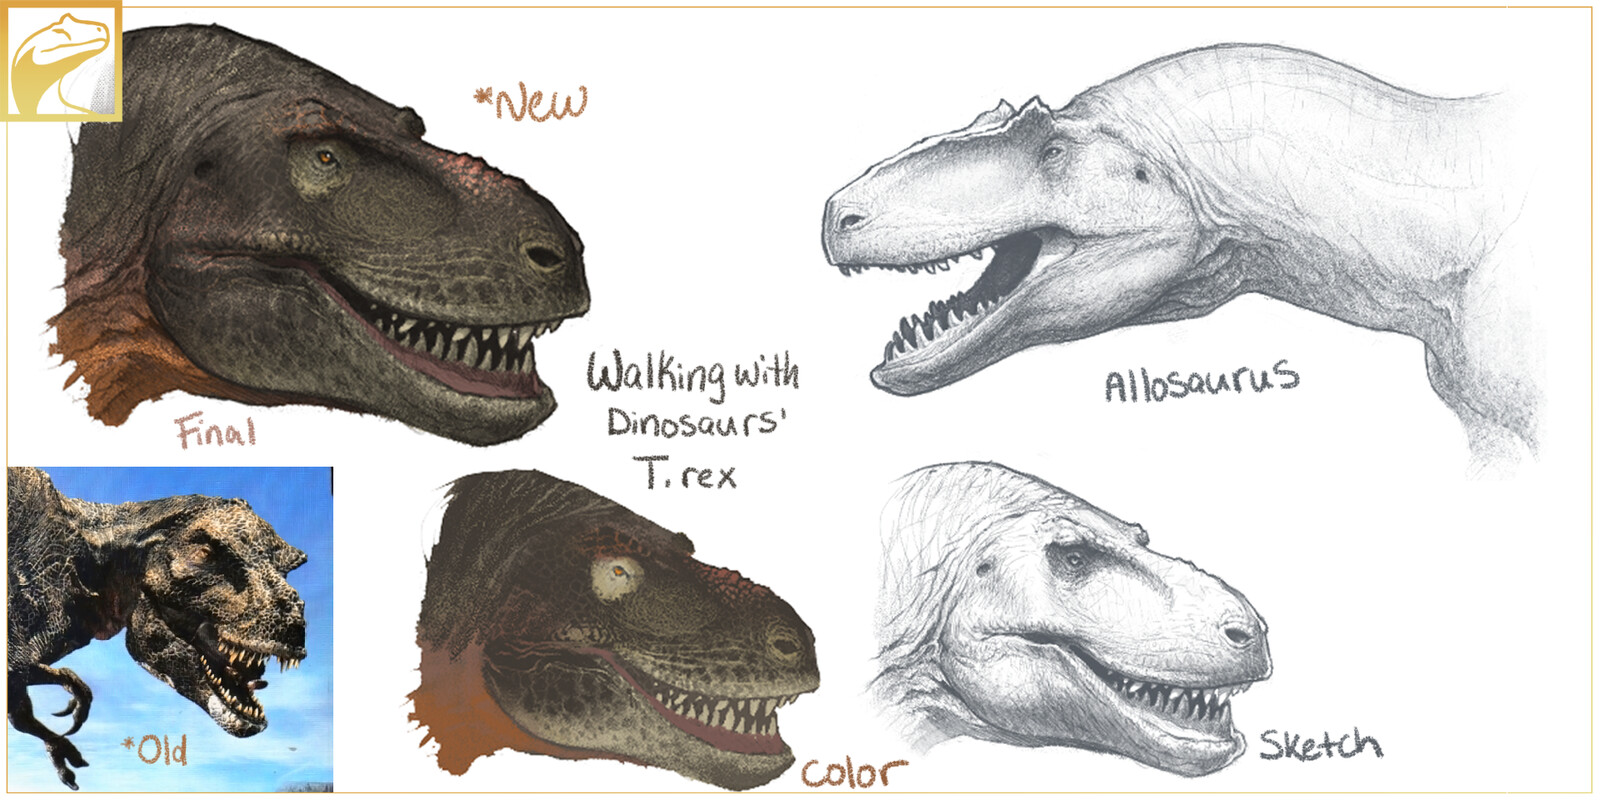 Allosaurus & Tyrannosaurus from 'Walking with Dinosaurs' re-envisioned